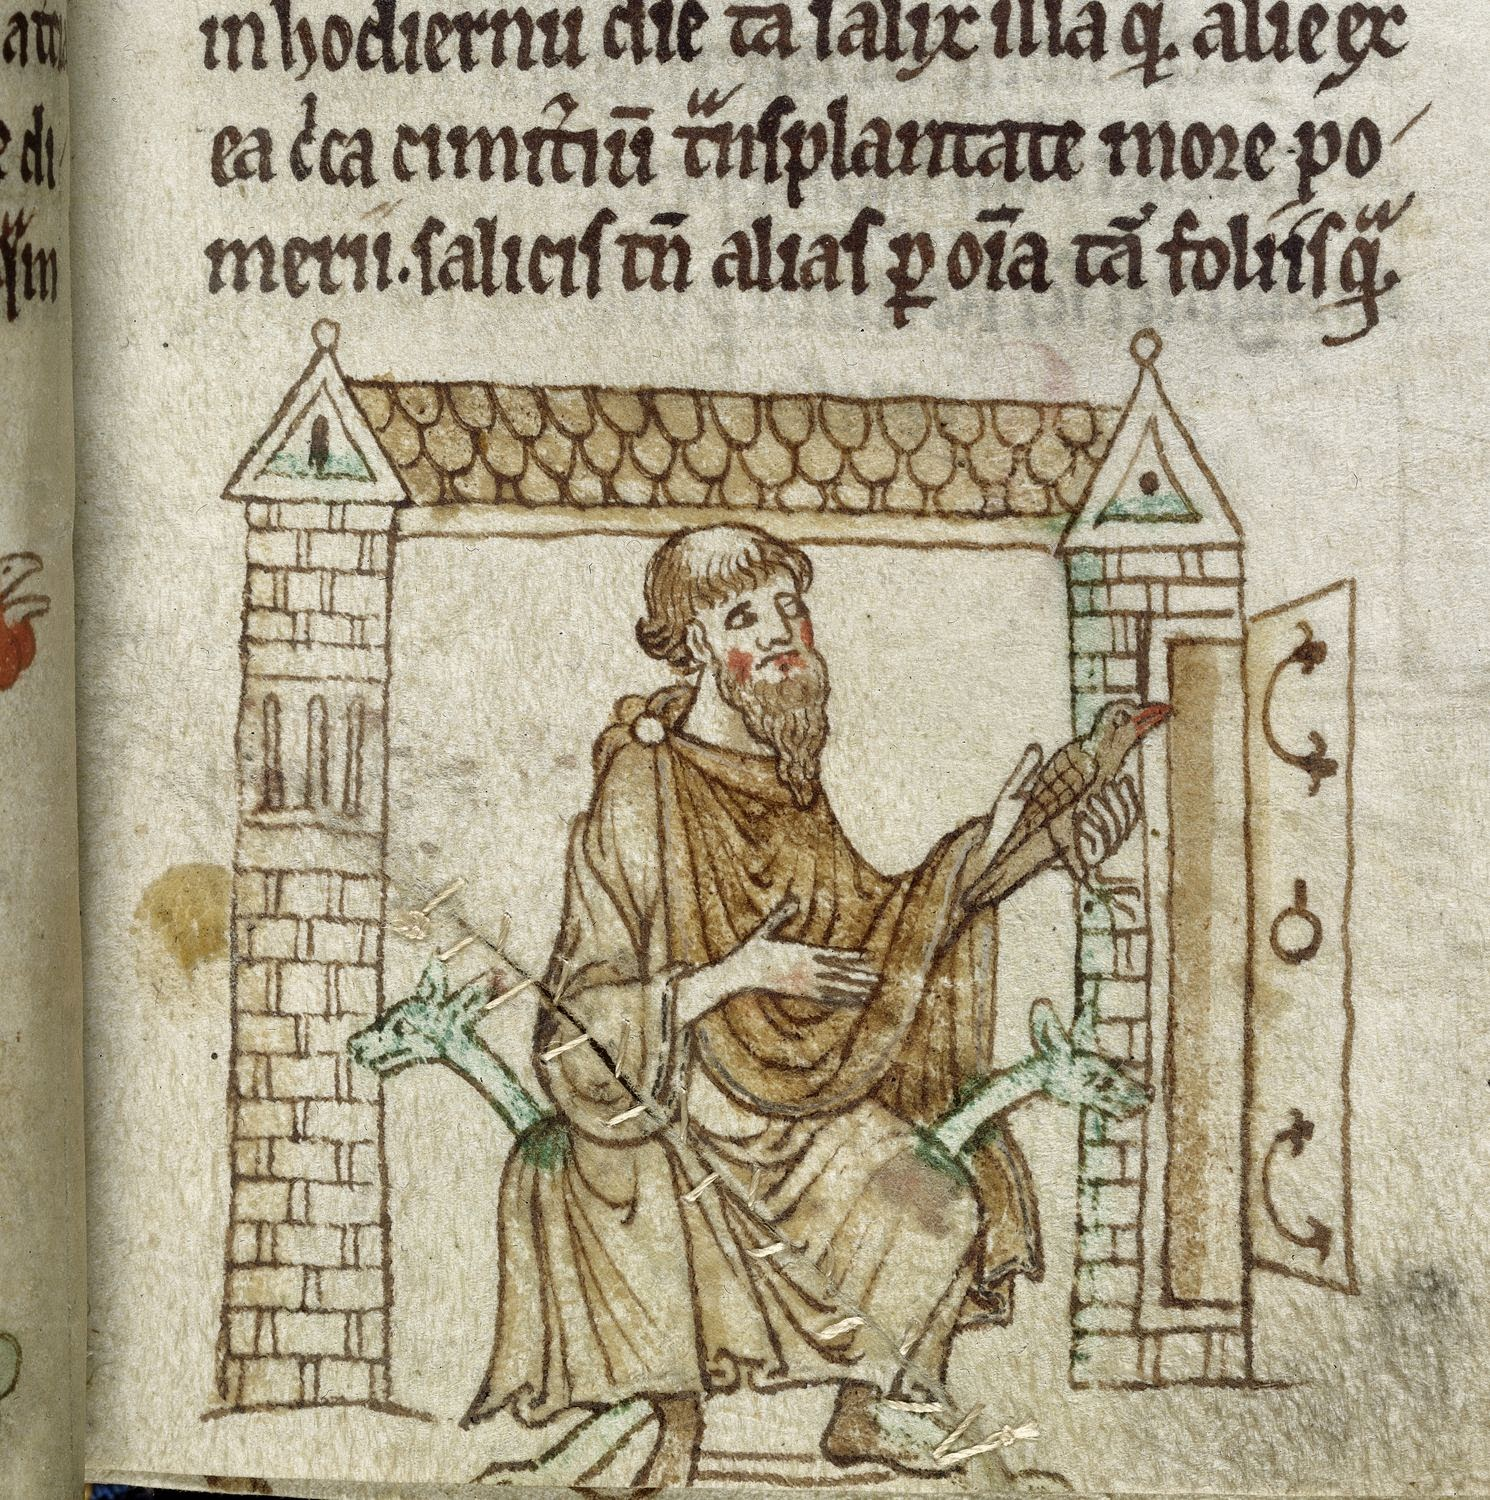 gerald of wales This page contains a translation of the writings of gerald of wales (1146-1223) on the discovery of king arthur's tomb and remains arthur was the national hero of the welsh, who spent many centuries struggling against the incursion of england.